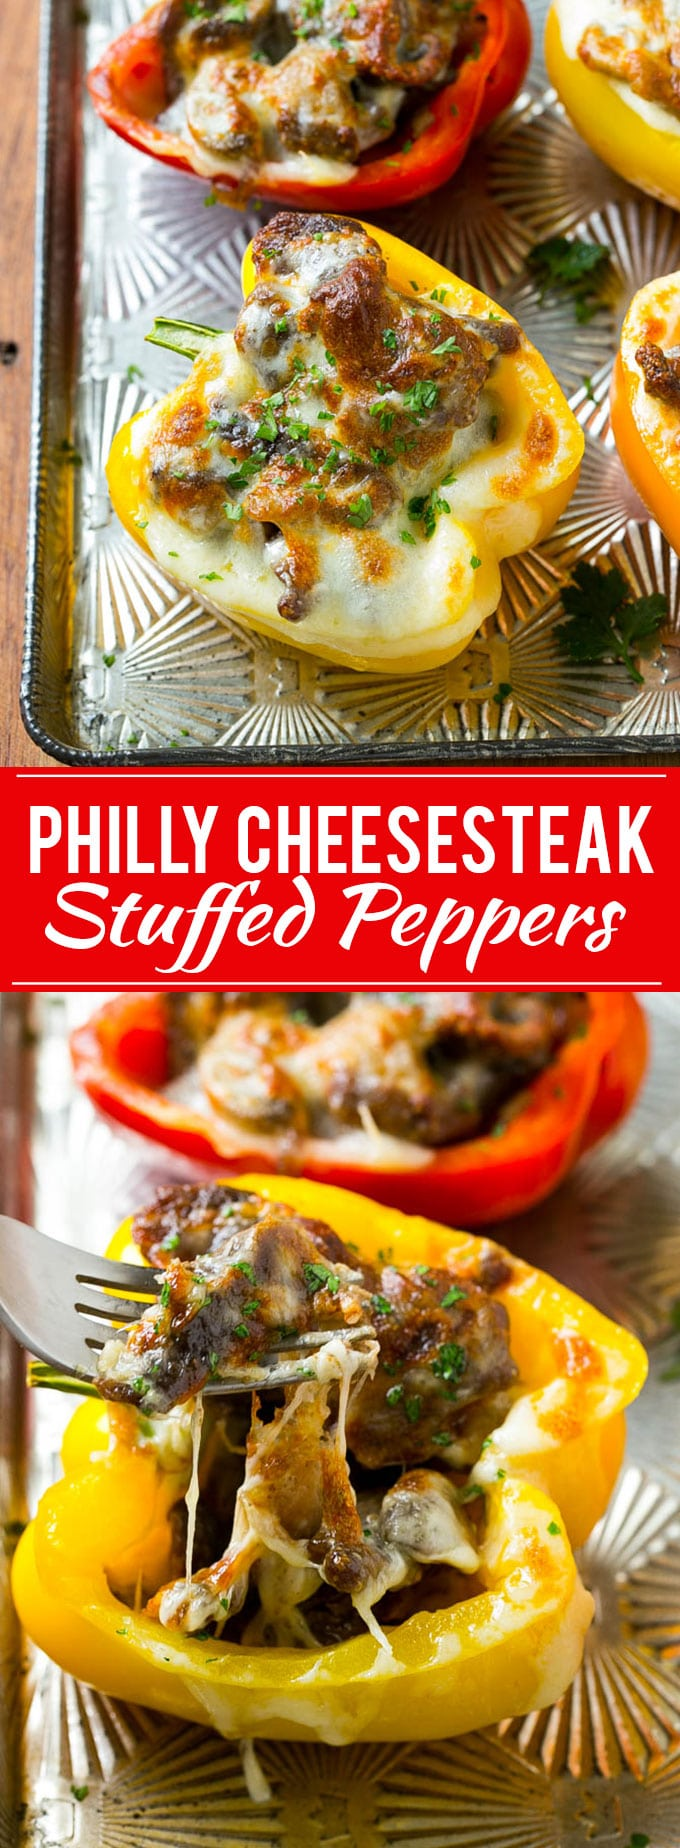 Philly Cheesesteak Stuffed Peppers Recipe | Easy Stuffed Peppers | Low Carb Stuffed Peppers #peppers #steak #cheese #mushrooms #lowcarb #keto #dinner #dinneratthezoo